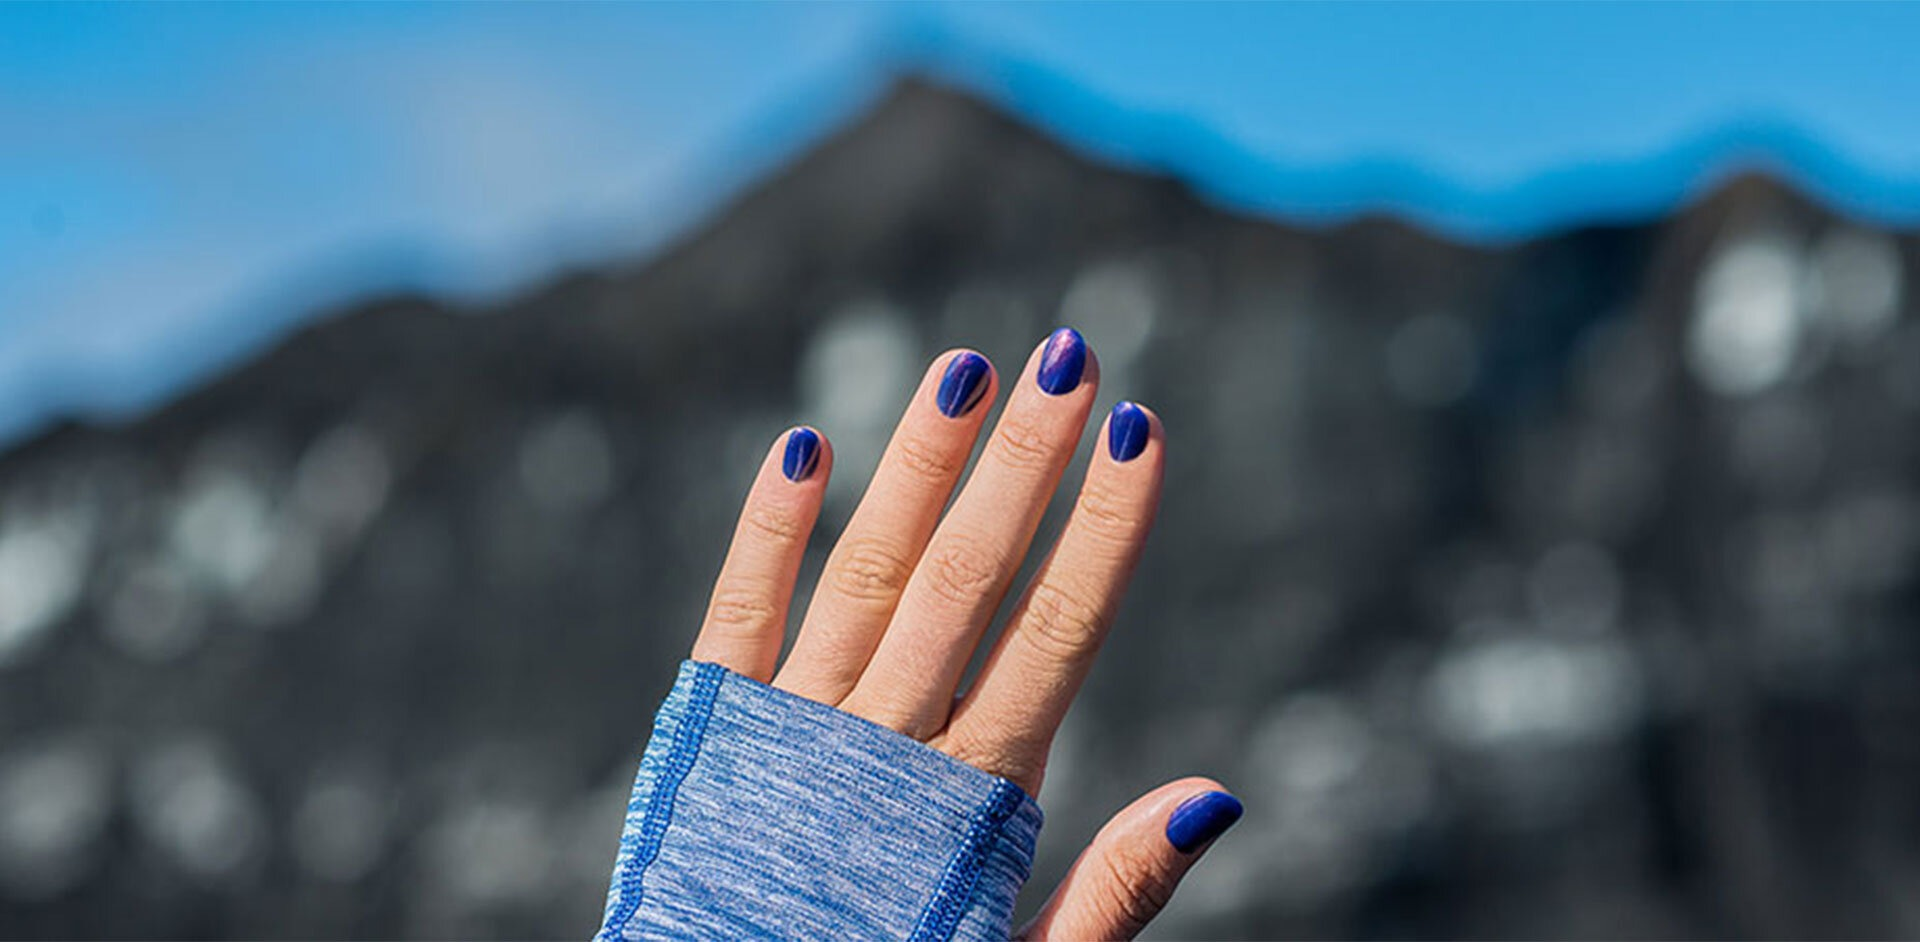 Shop the Vacation Nails by Occasion Shop